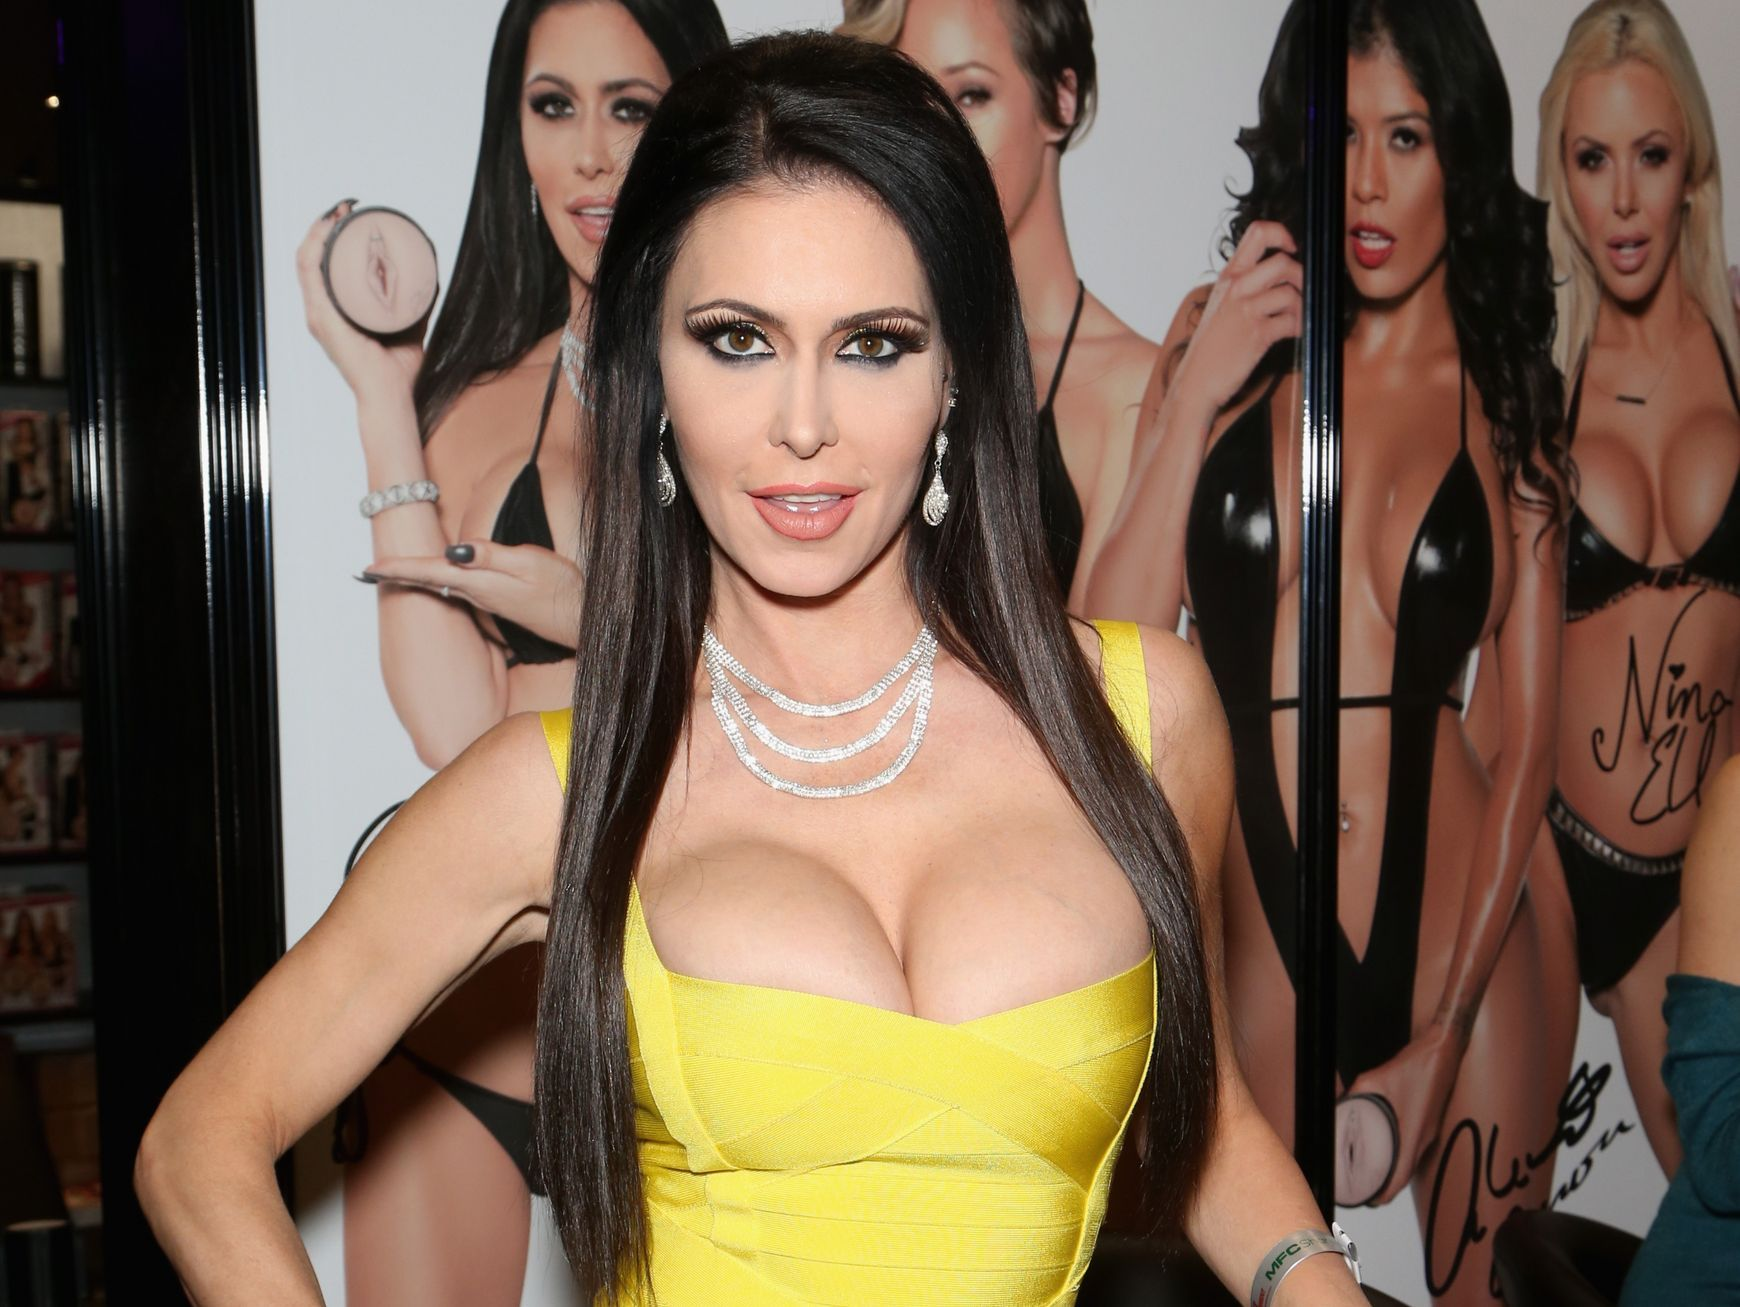 Amber Rose Film Porno adult film star jessica jaymes cause of death revealed